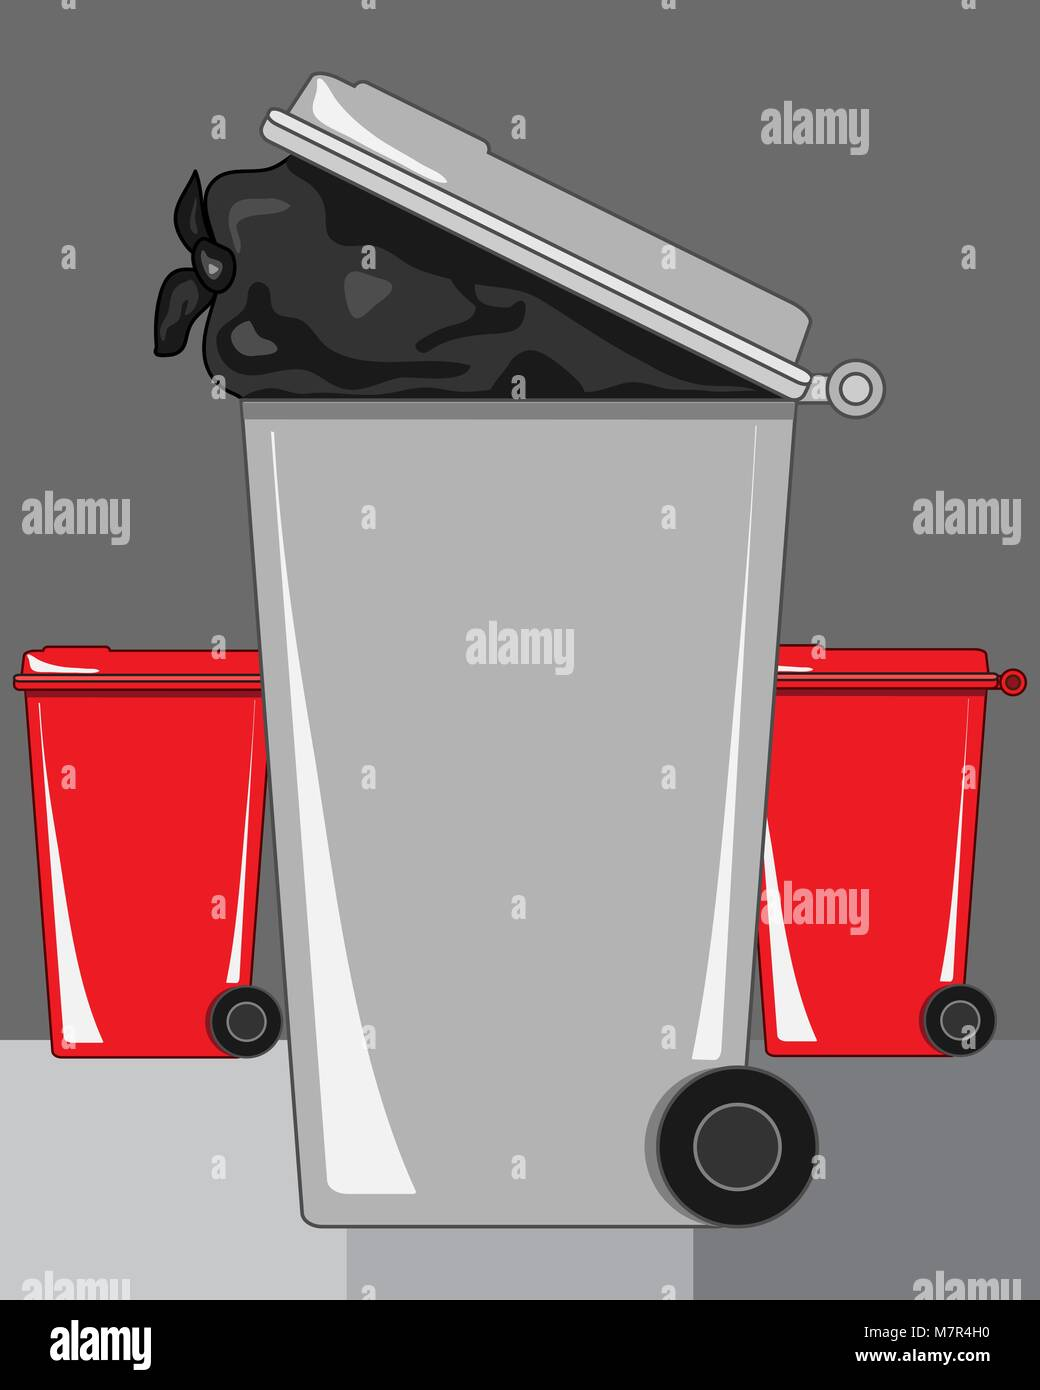 a vector illustration in eps 8 format of a gray refuse bin with a bag of rubbish showing and red recycling bins - Stock Vector